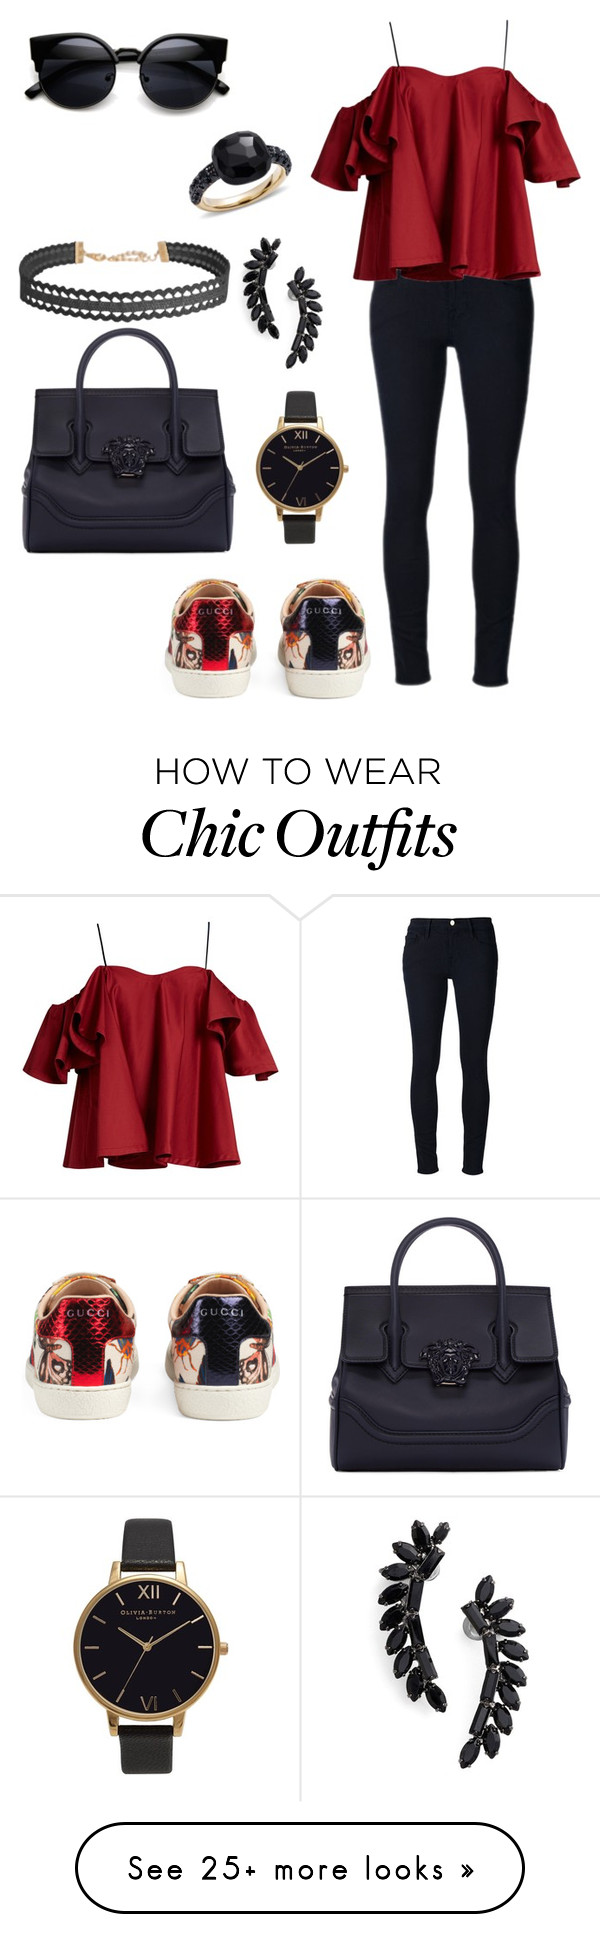 """""""Shopping look"""" by principessalove on Polyvore featuring Frame Denim, Anna October, Gucci, Versace, Olivia Burton, Cristabelle, Humble Chic and Pomellato"""